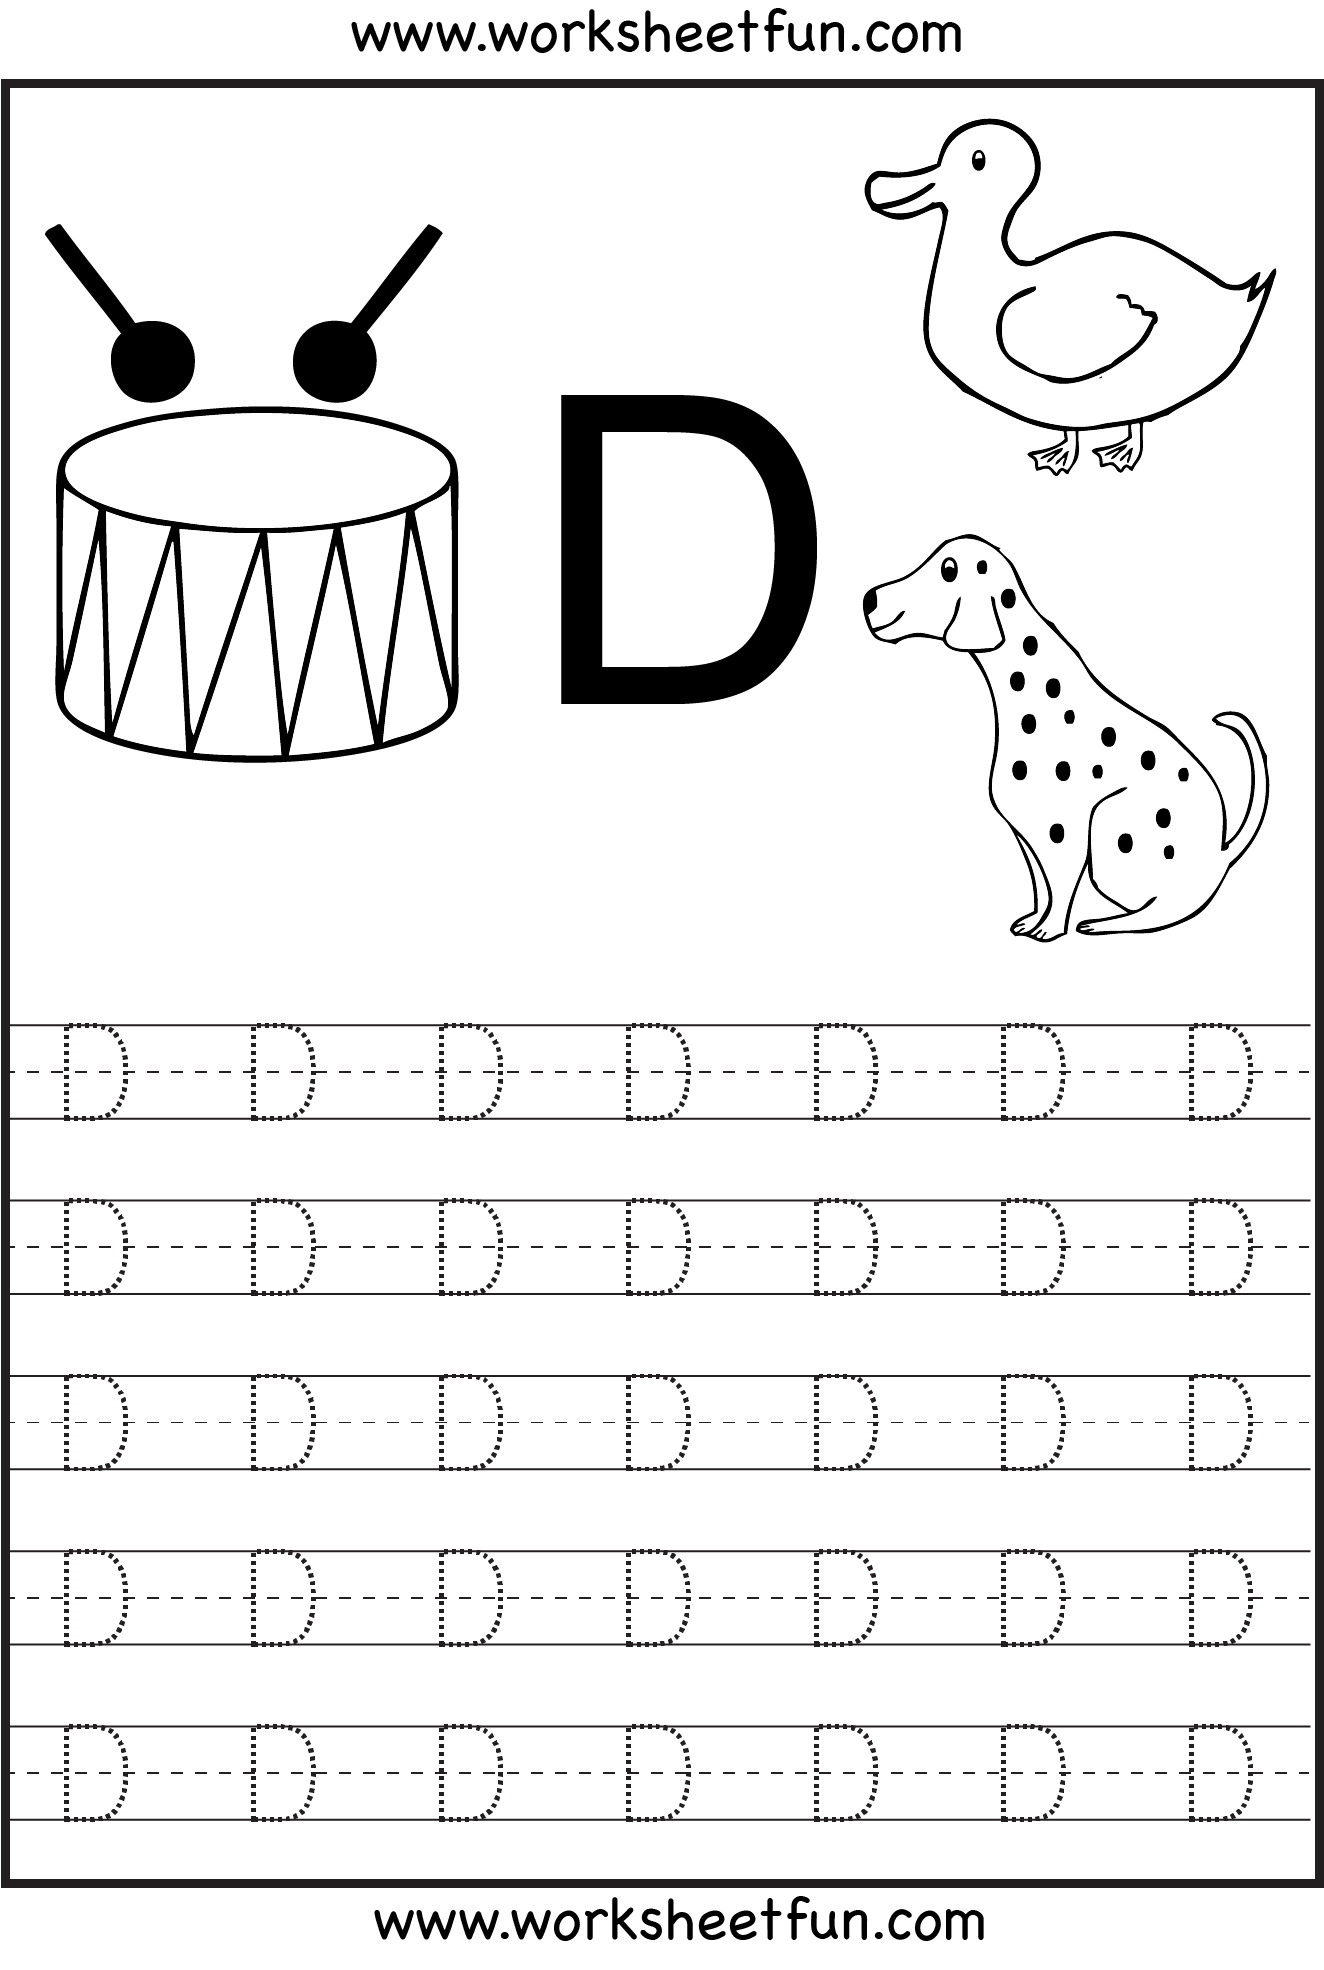 Letter Tracing | Alphabet Tracing Worksheets, Writing intended for Letter Tracing D